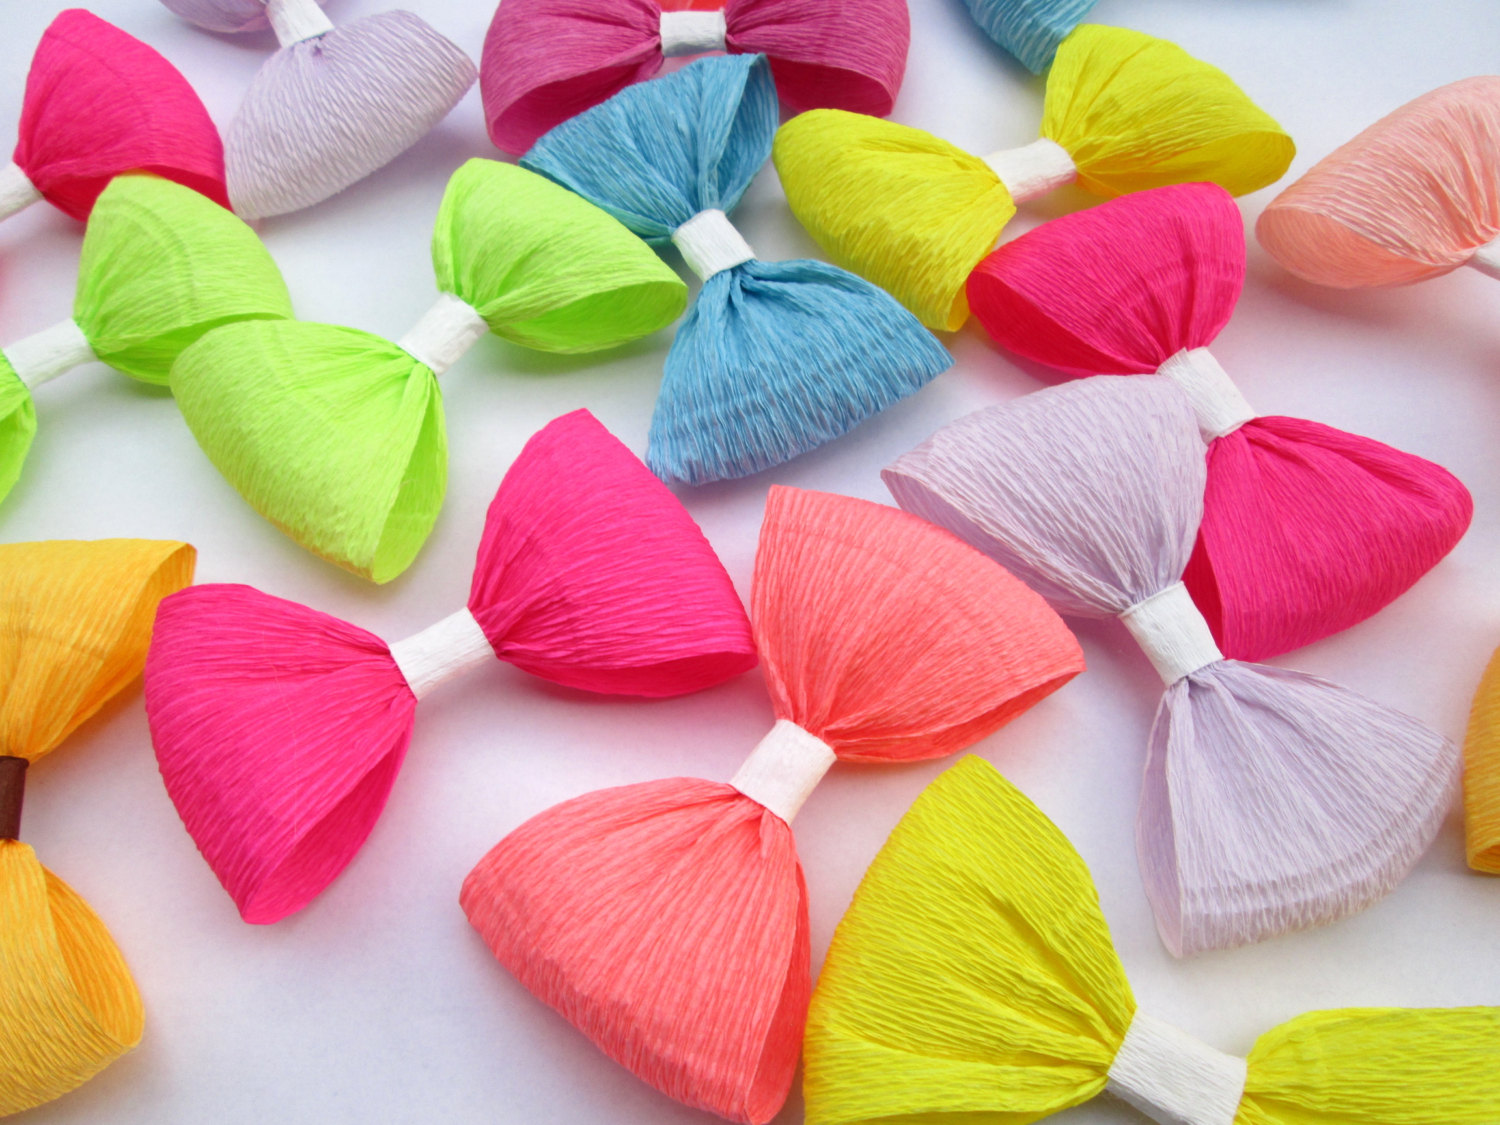 12 Paper Bows/Crepe Paper Bows/Birthday by LandofFlowers on Etsy.